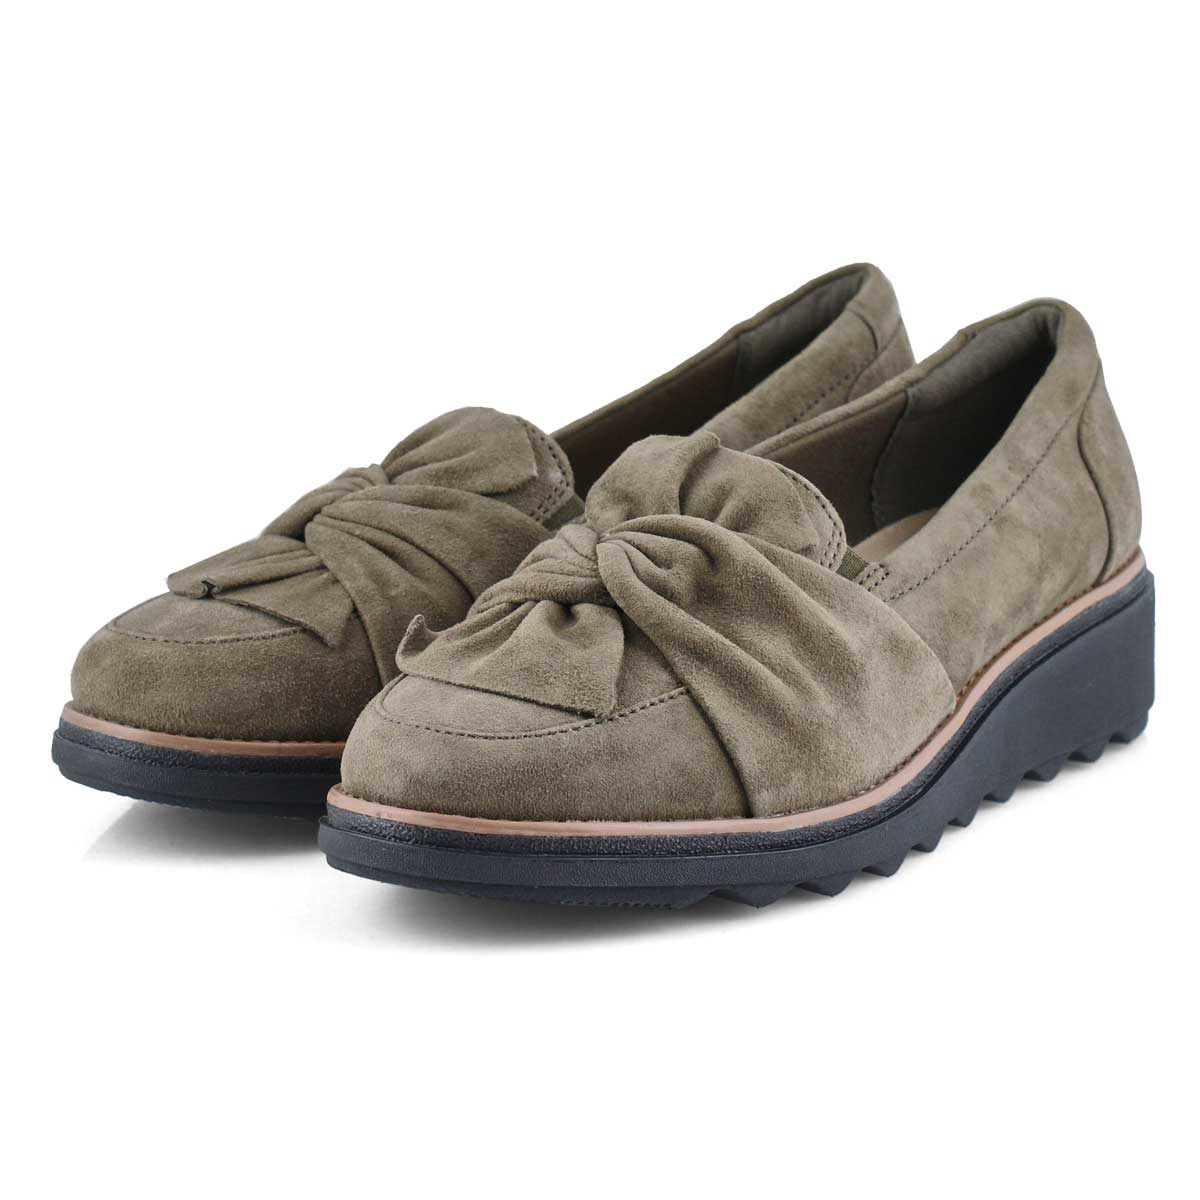 Lds Sharon Dasher olv suede wedge oxford